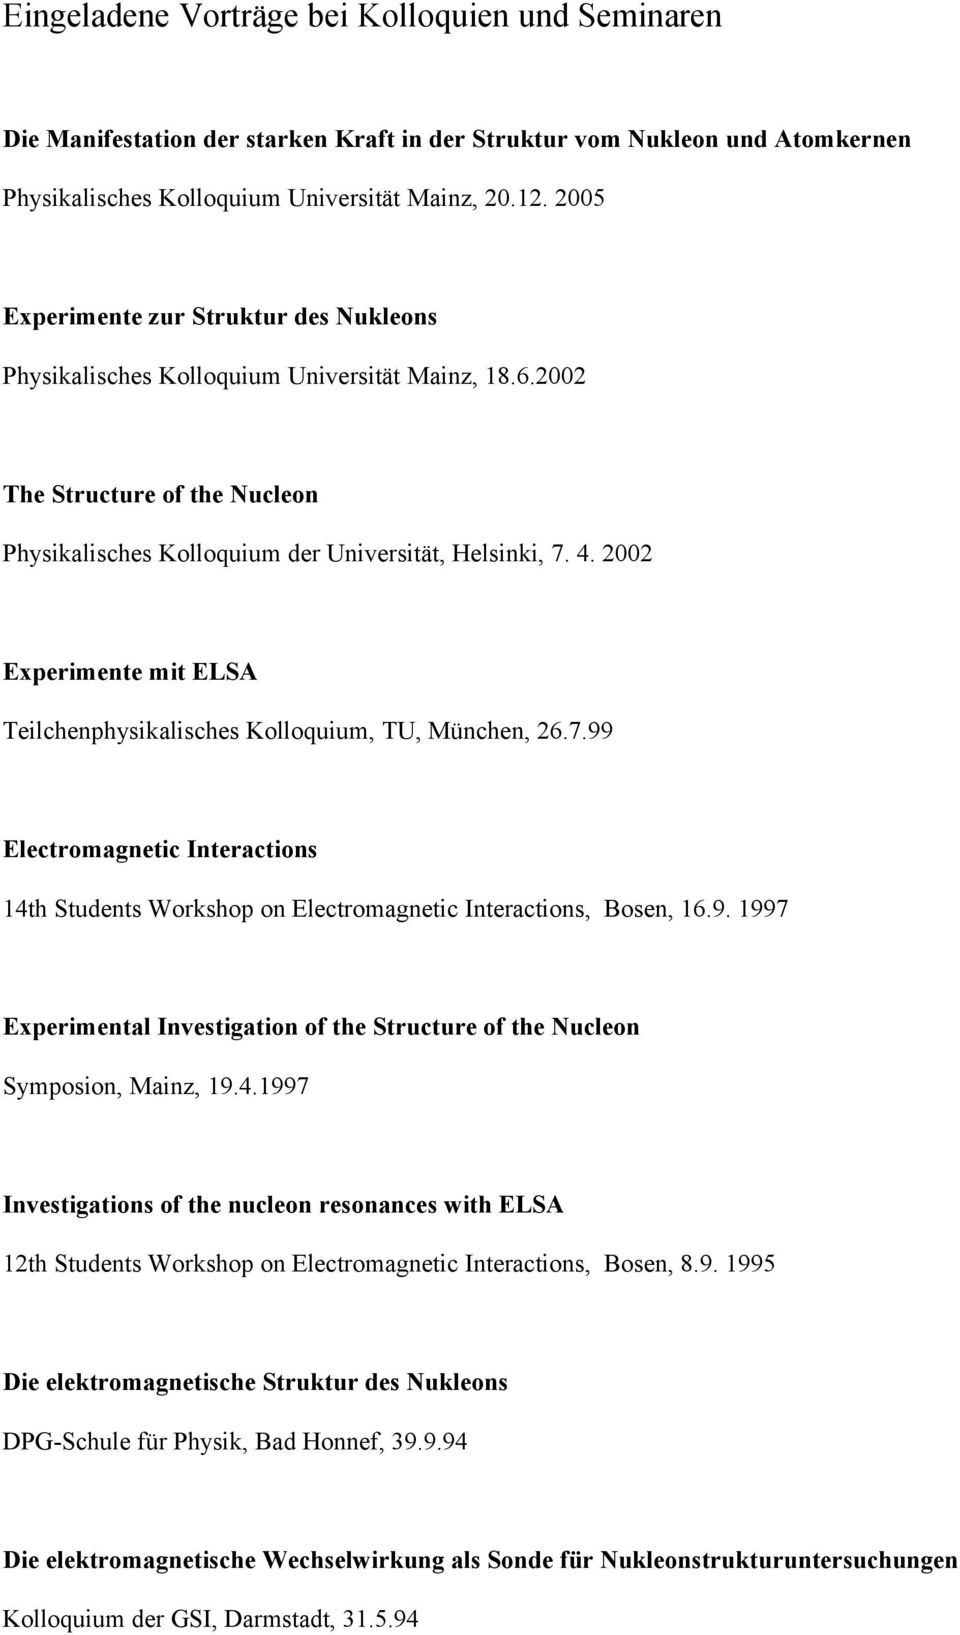 2002 Experimente mit ELSA Teilchenphysikalisches Kolloquium, TU, München, 26.7.99 Electromagnetic Interactions 14th Students Workshop on Electromagnetic Interactions, Bosen, 16.9. 1997 Experimental Investigation of the Structure of the Nucleon Symposion, Mainz, 19.